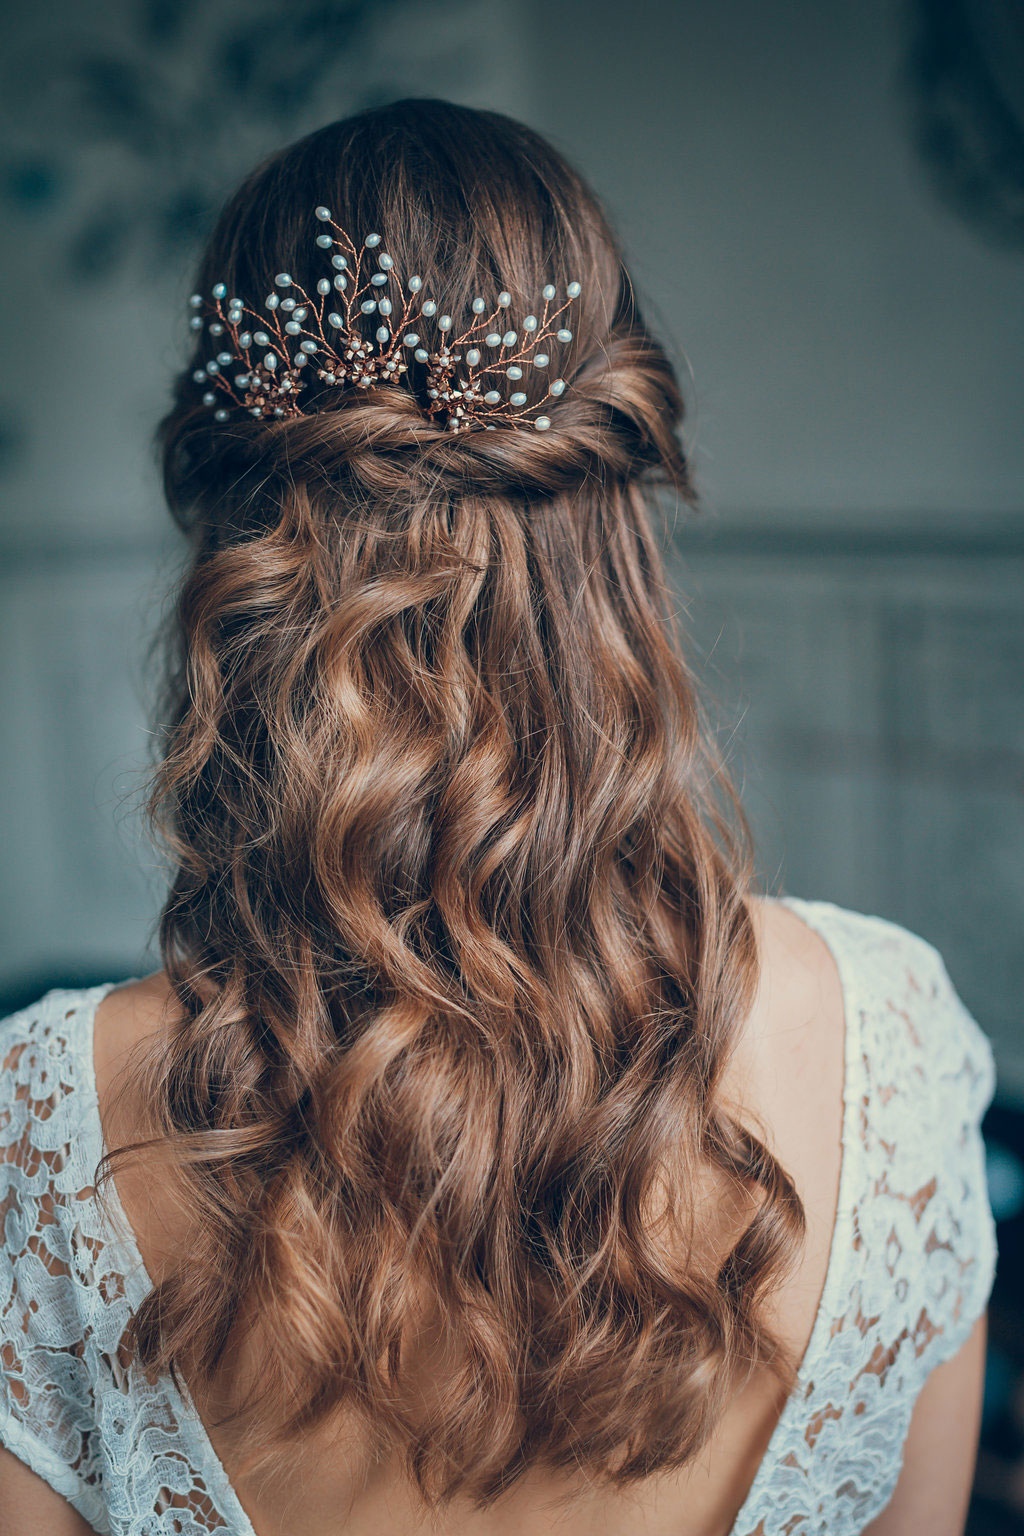 Beautiful Bridal Half Up Half Down Wedding Hair Inspiration Pertaining To Most Popular Long Half Updo Hairstyles With Accessories (View 6 of 20)